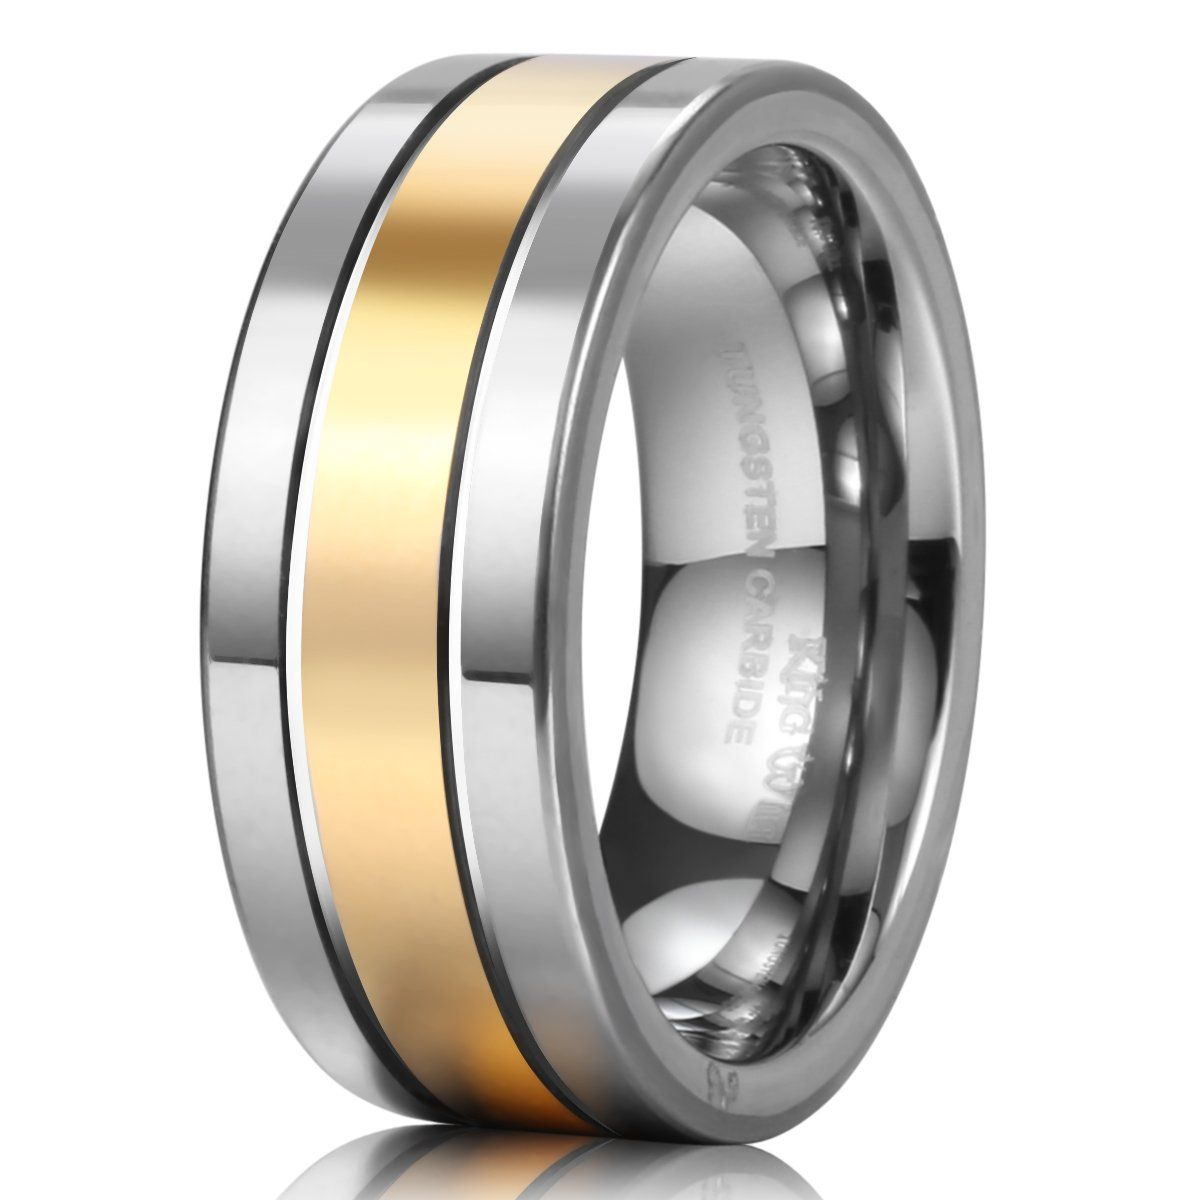 King Will 8mm Flat Top Tungsten Ring Men's Wedding Band Grooved 14k Gold  Two Tone Grooved